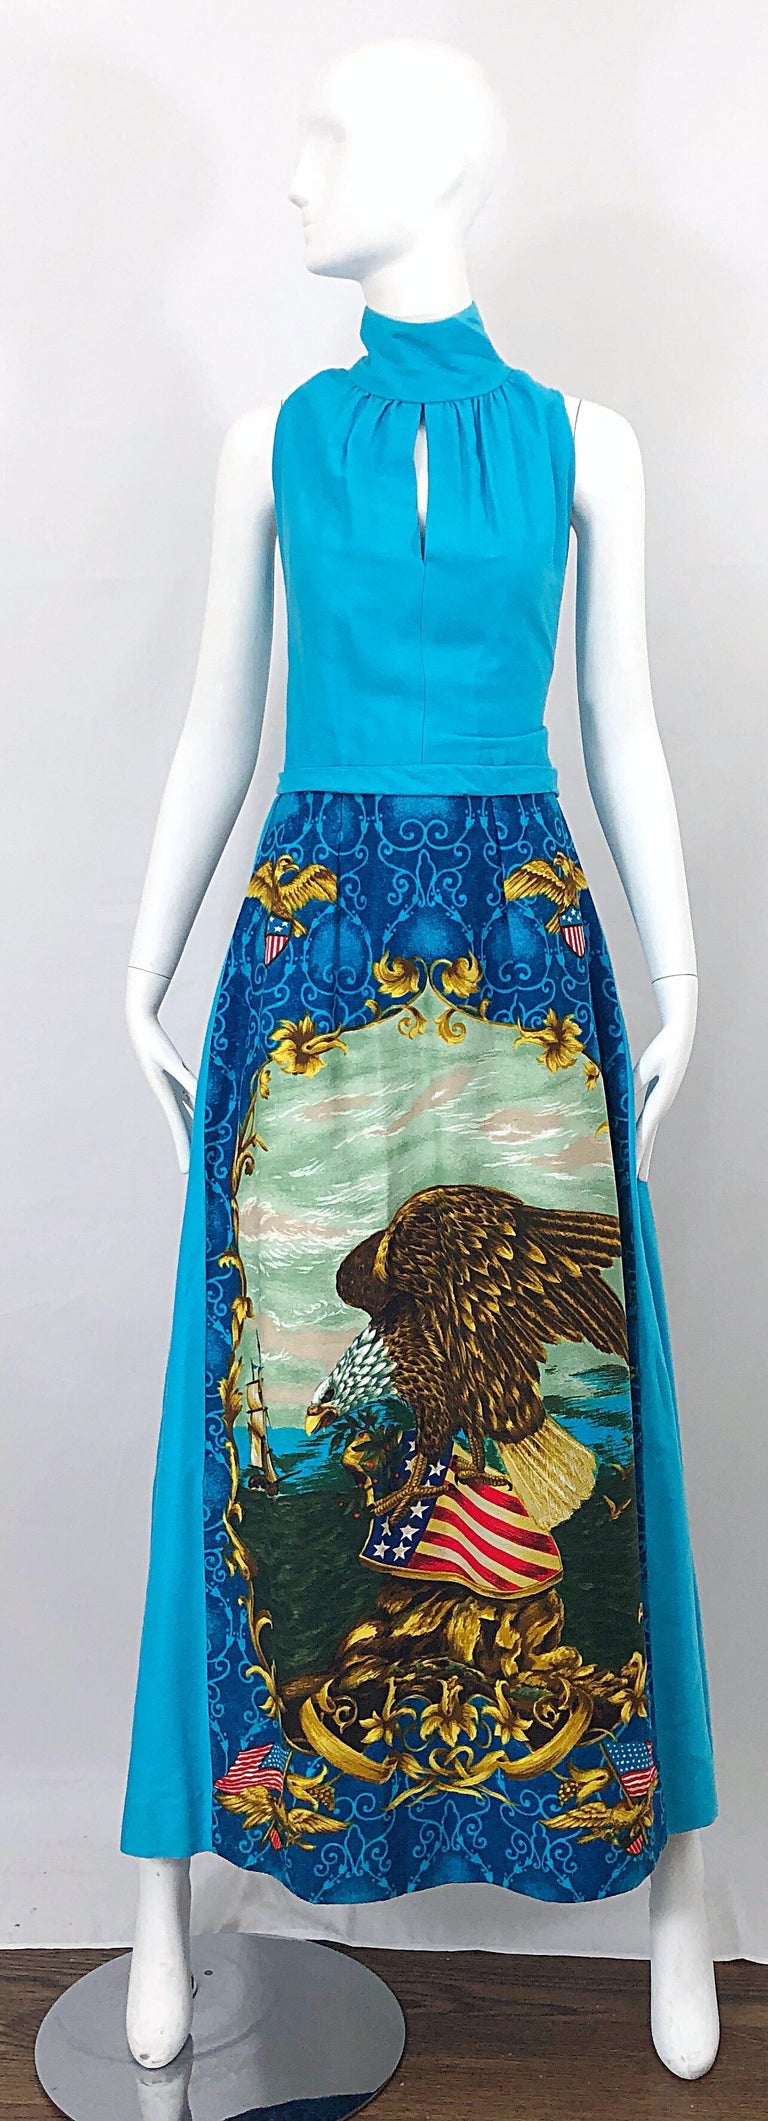 Incredible vintage 1970s patriotic maxi dress! Turquoise blue base, with vibrant colors of red, white, blue and gold throughout. Peek-a-boo cut out above the bust, with a high neck. Print on the front skirt is also on the back skirt. Soft felt